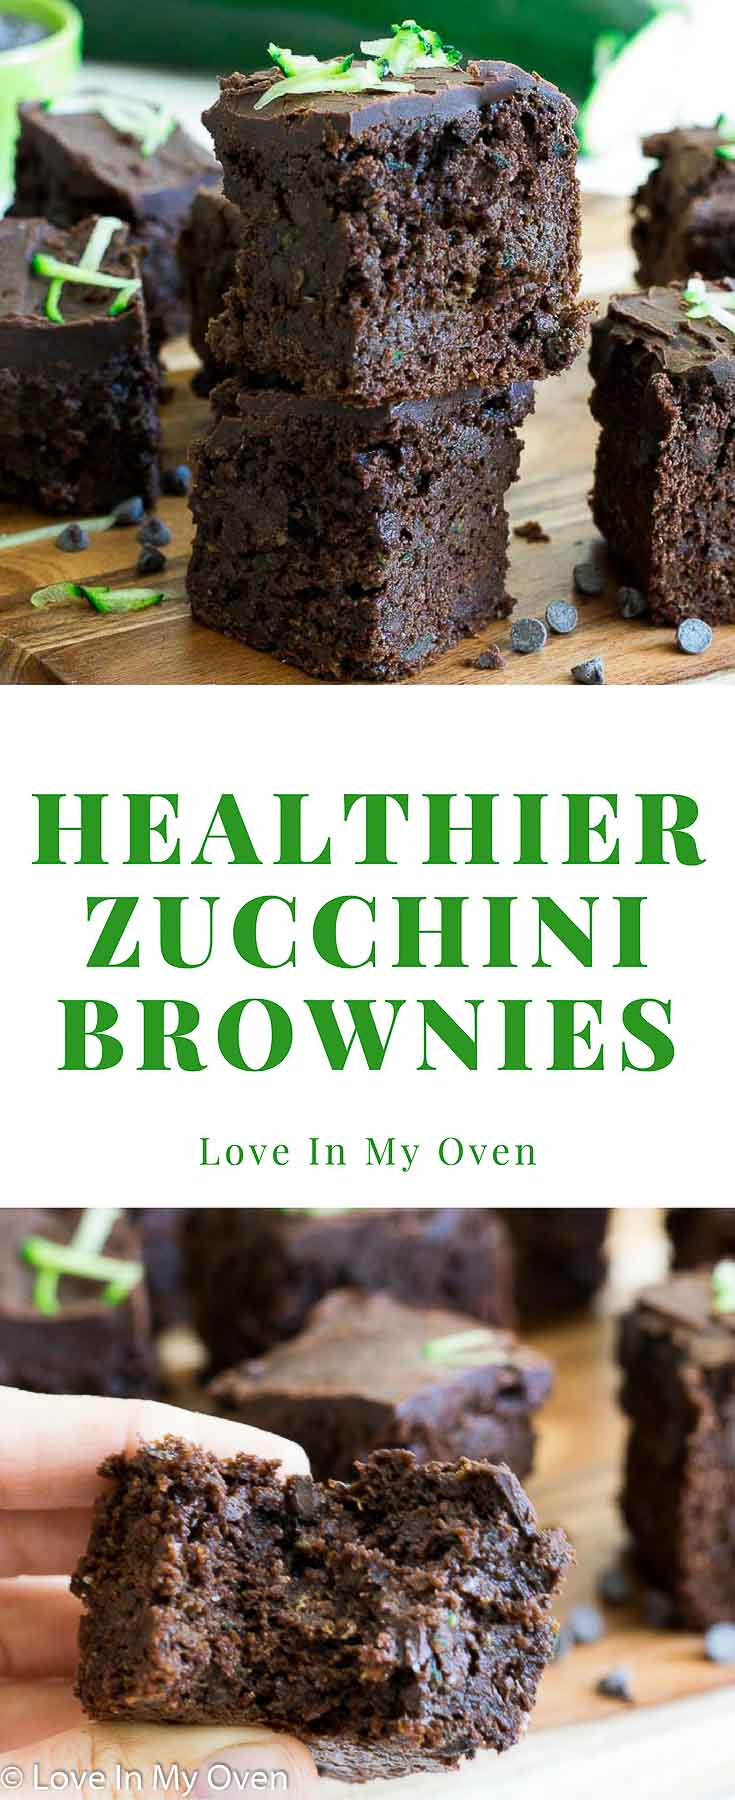 Moist, fudgy, healthier brownies made with shredded zucchini and almond butter! You won't be able to stop at just 1!